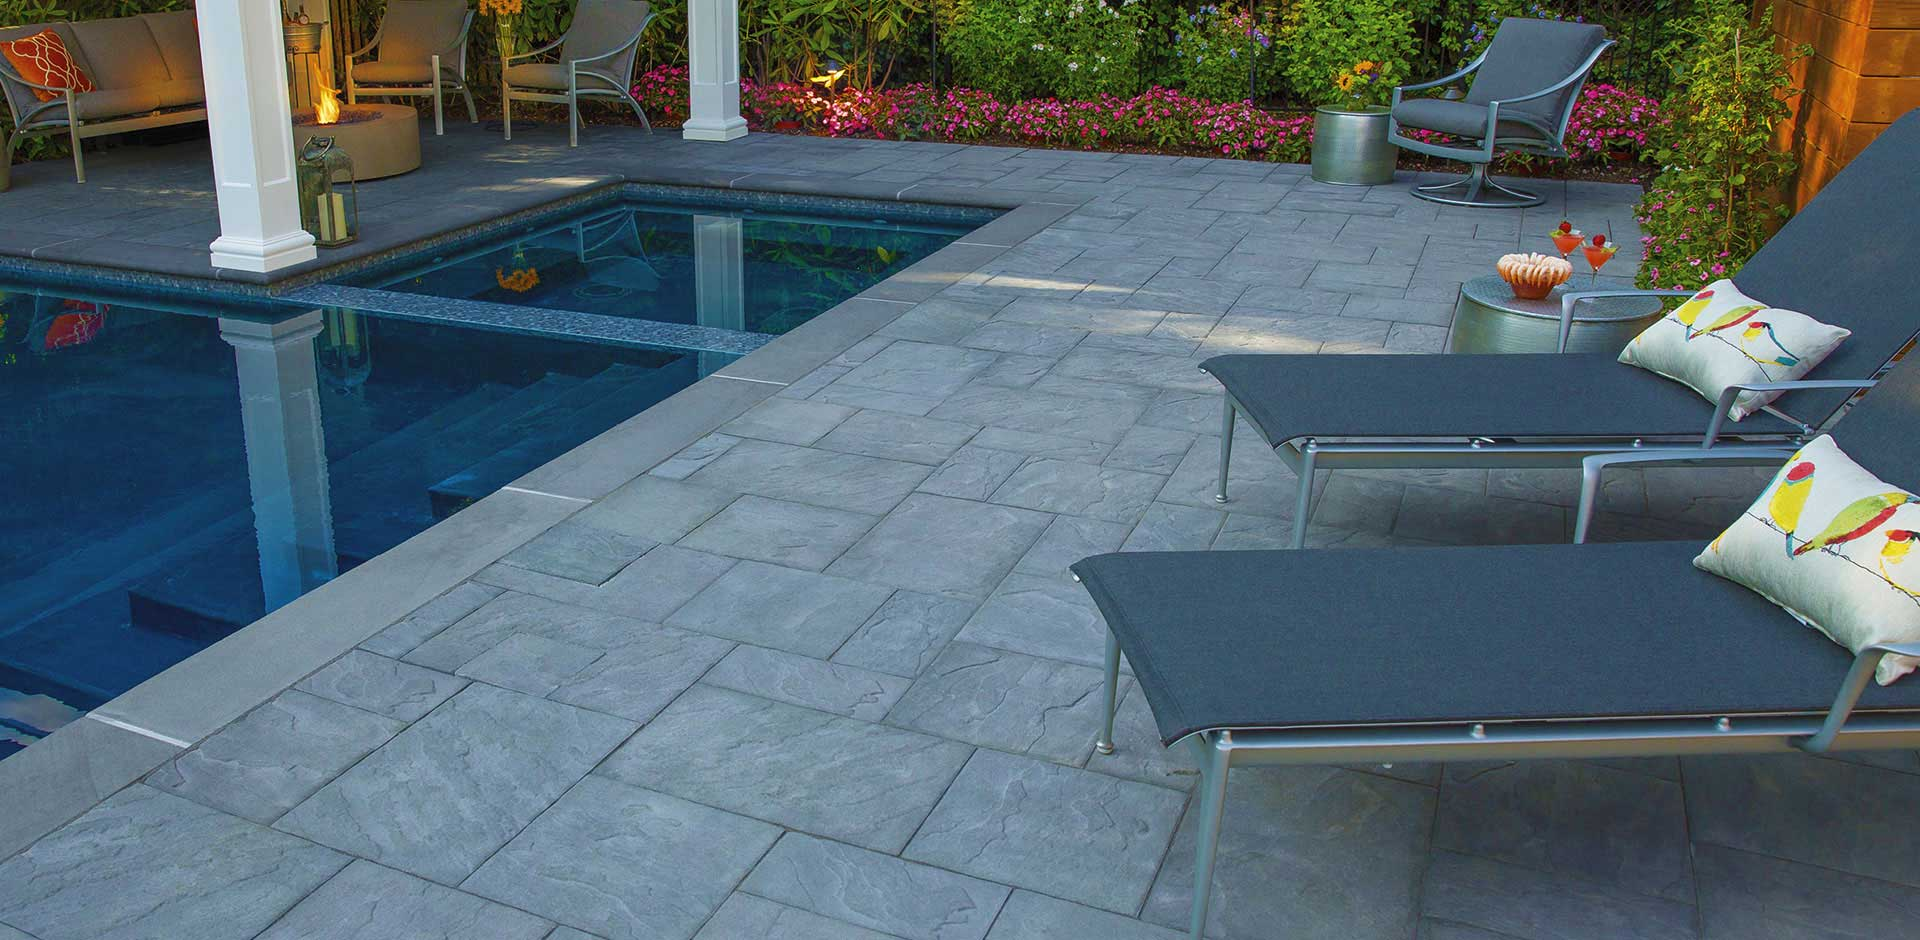 Blue tinted pavers of large square and rectangular shapes used around pool